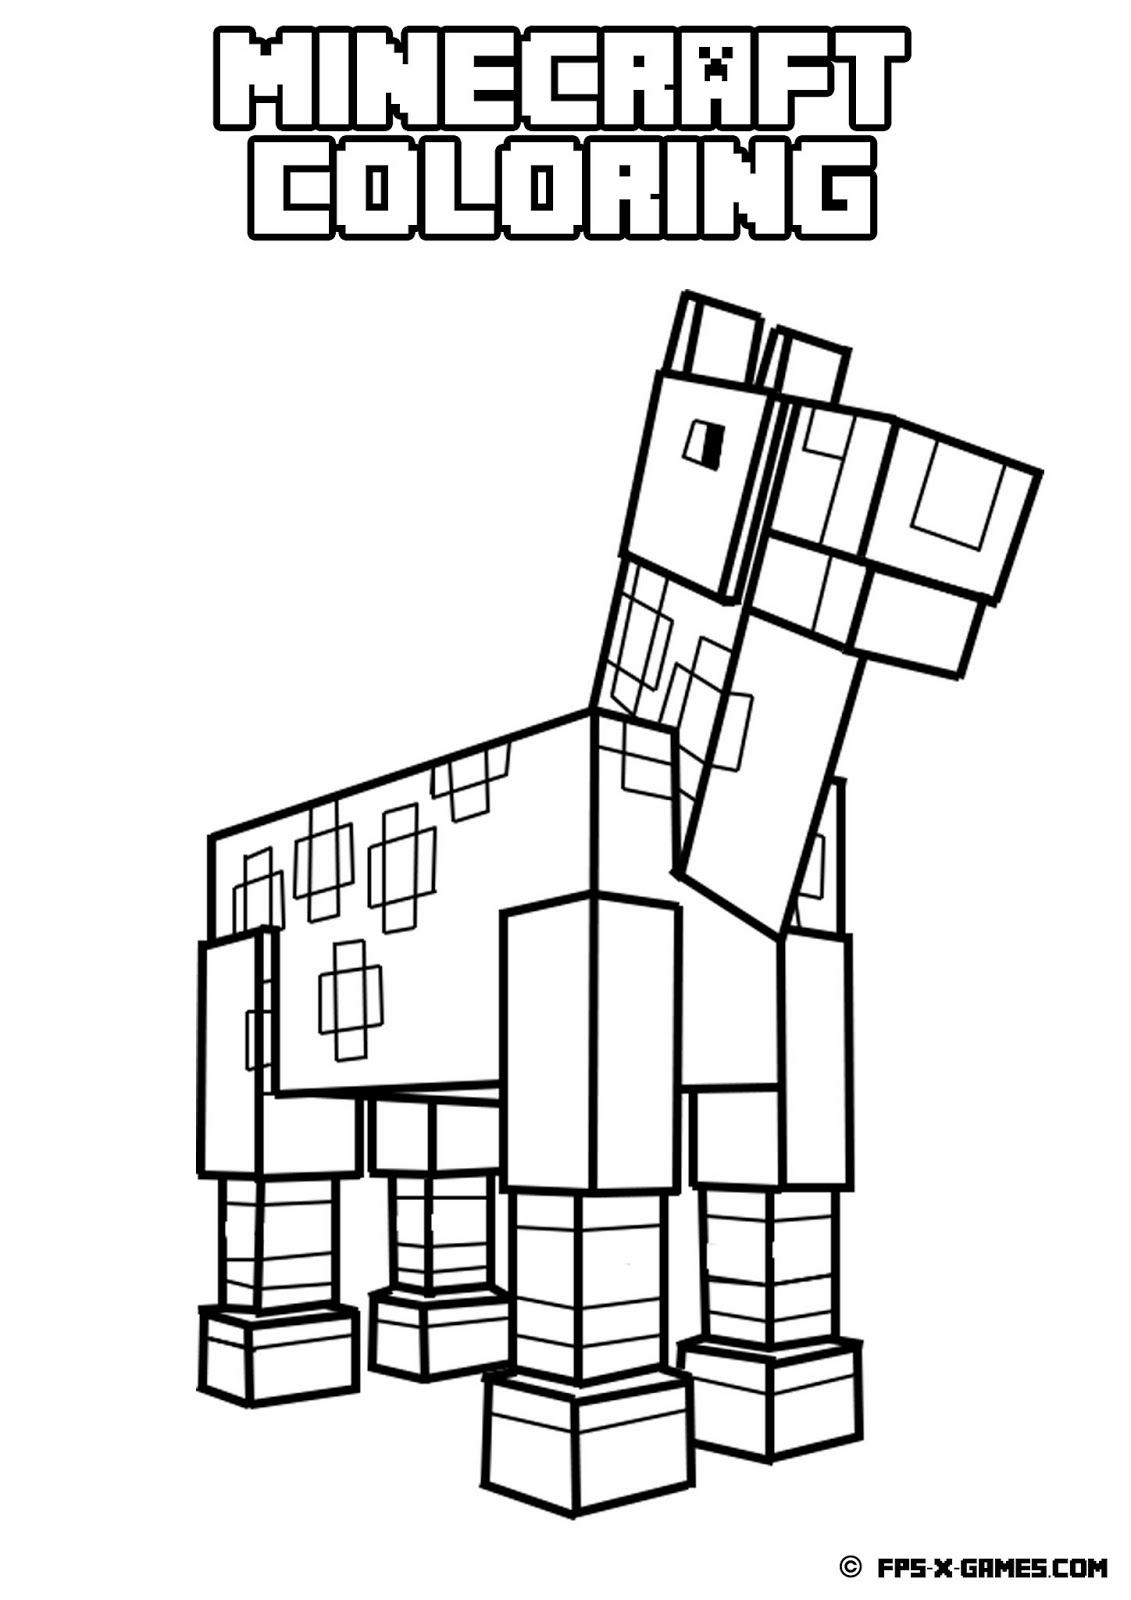 minecraft colouring pages free minecraft sword coloring pages at getcoloringscom free minecraft colouring free pages